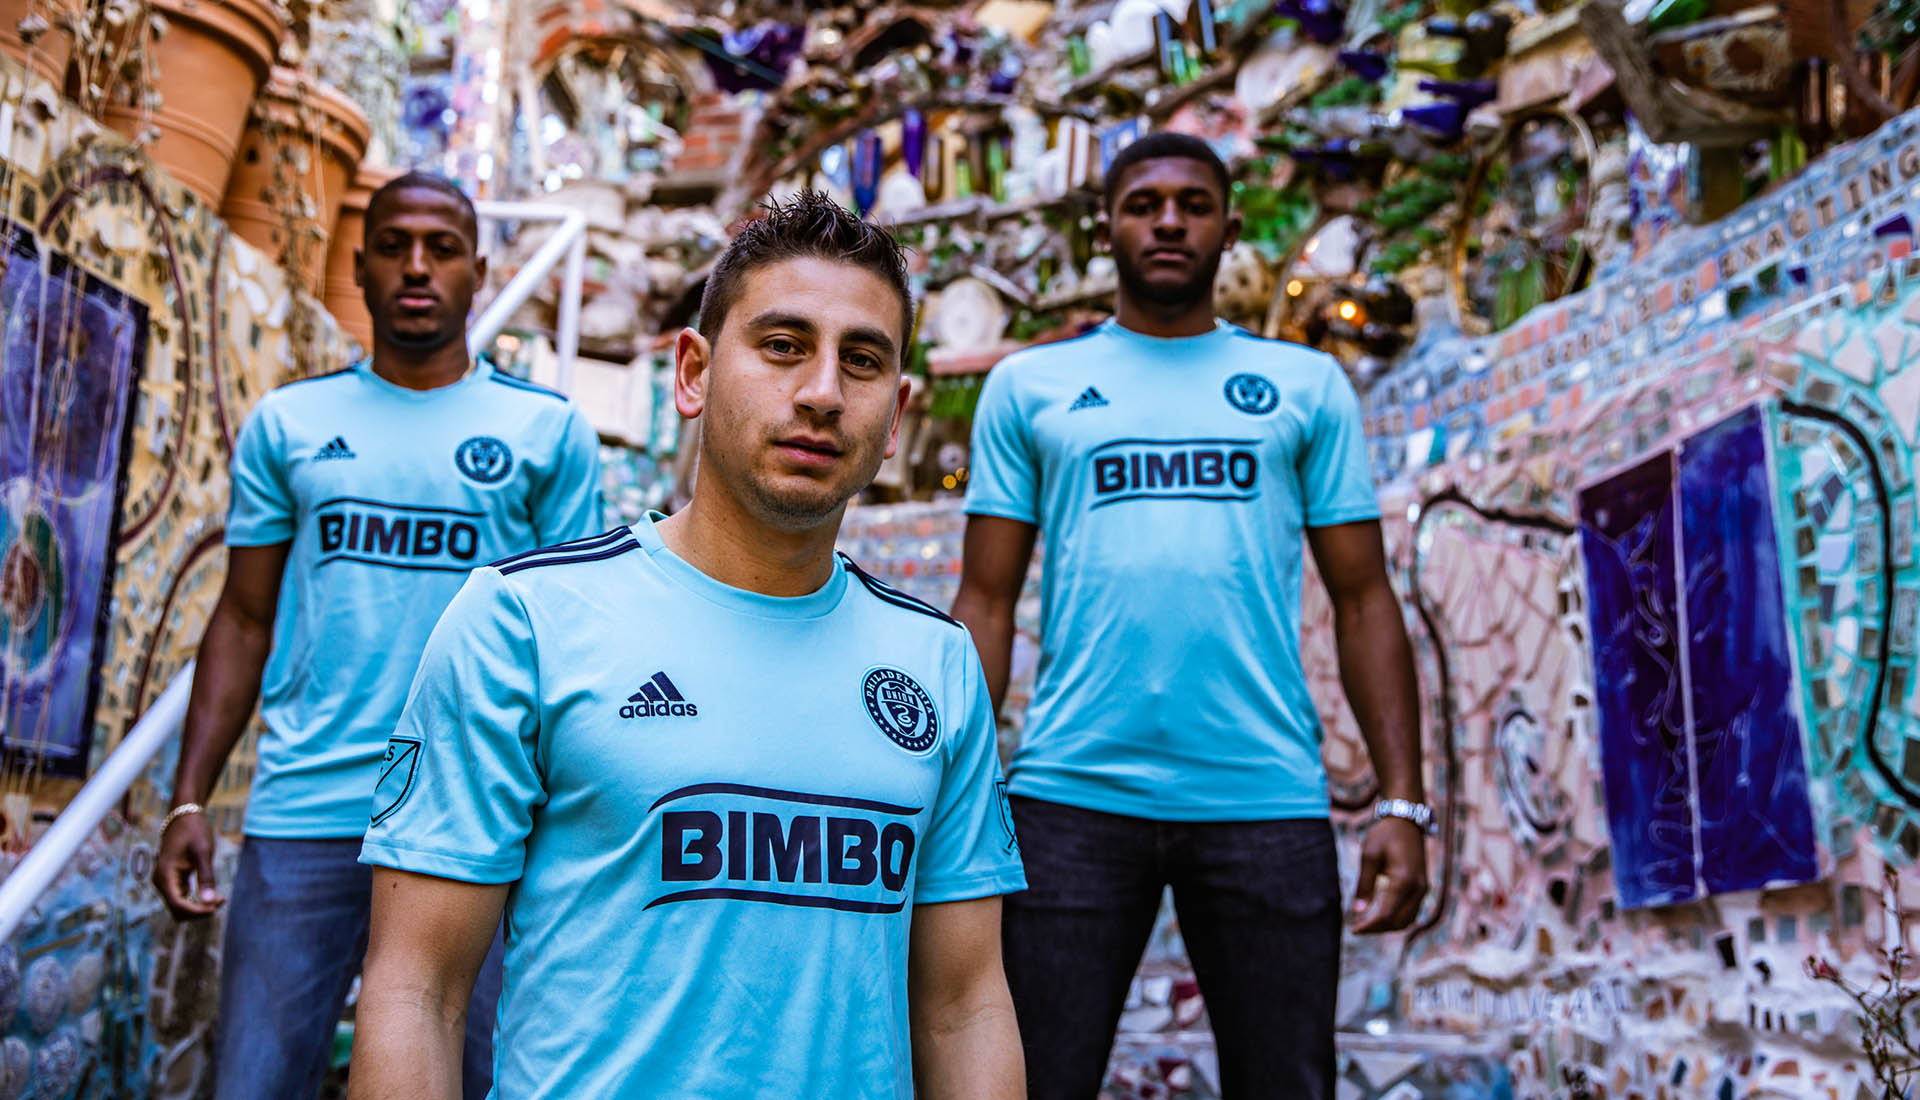 best loved 02fa9 72a34 Philadelphia Union Launch 2019 Parley x adidas 3rd Jersey ...